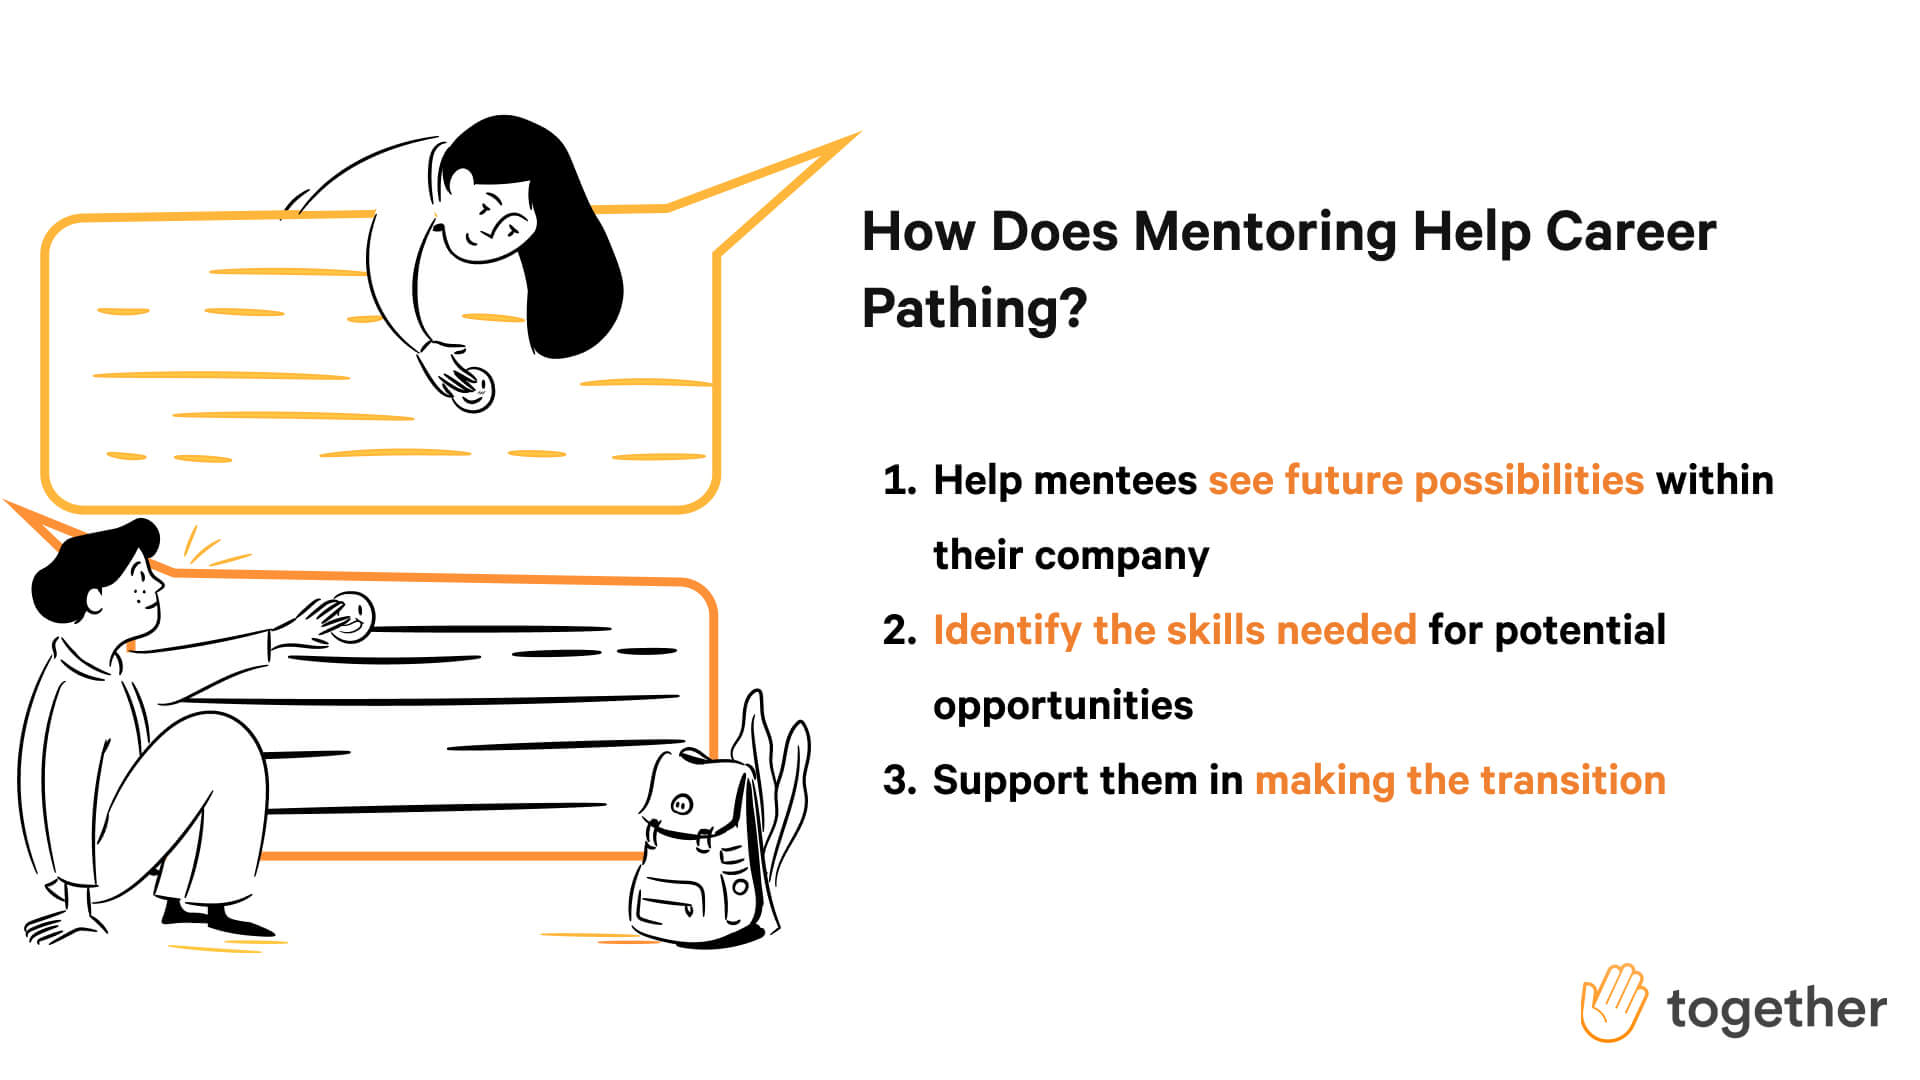 How Does Mentoring Help Career Pathing?